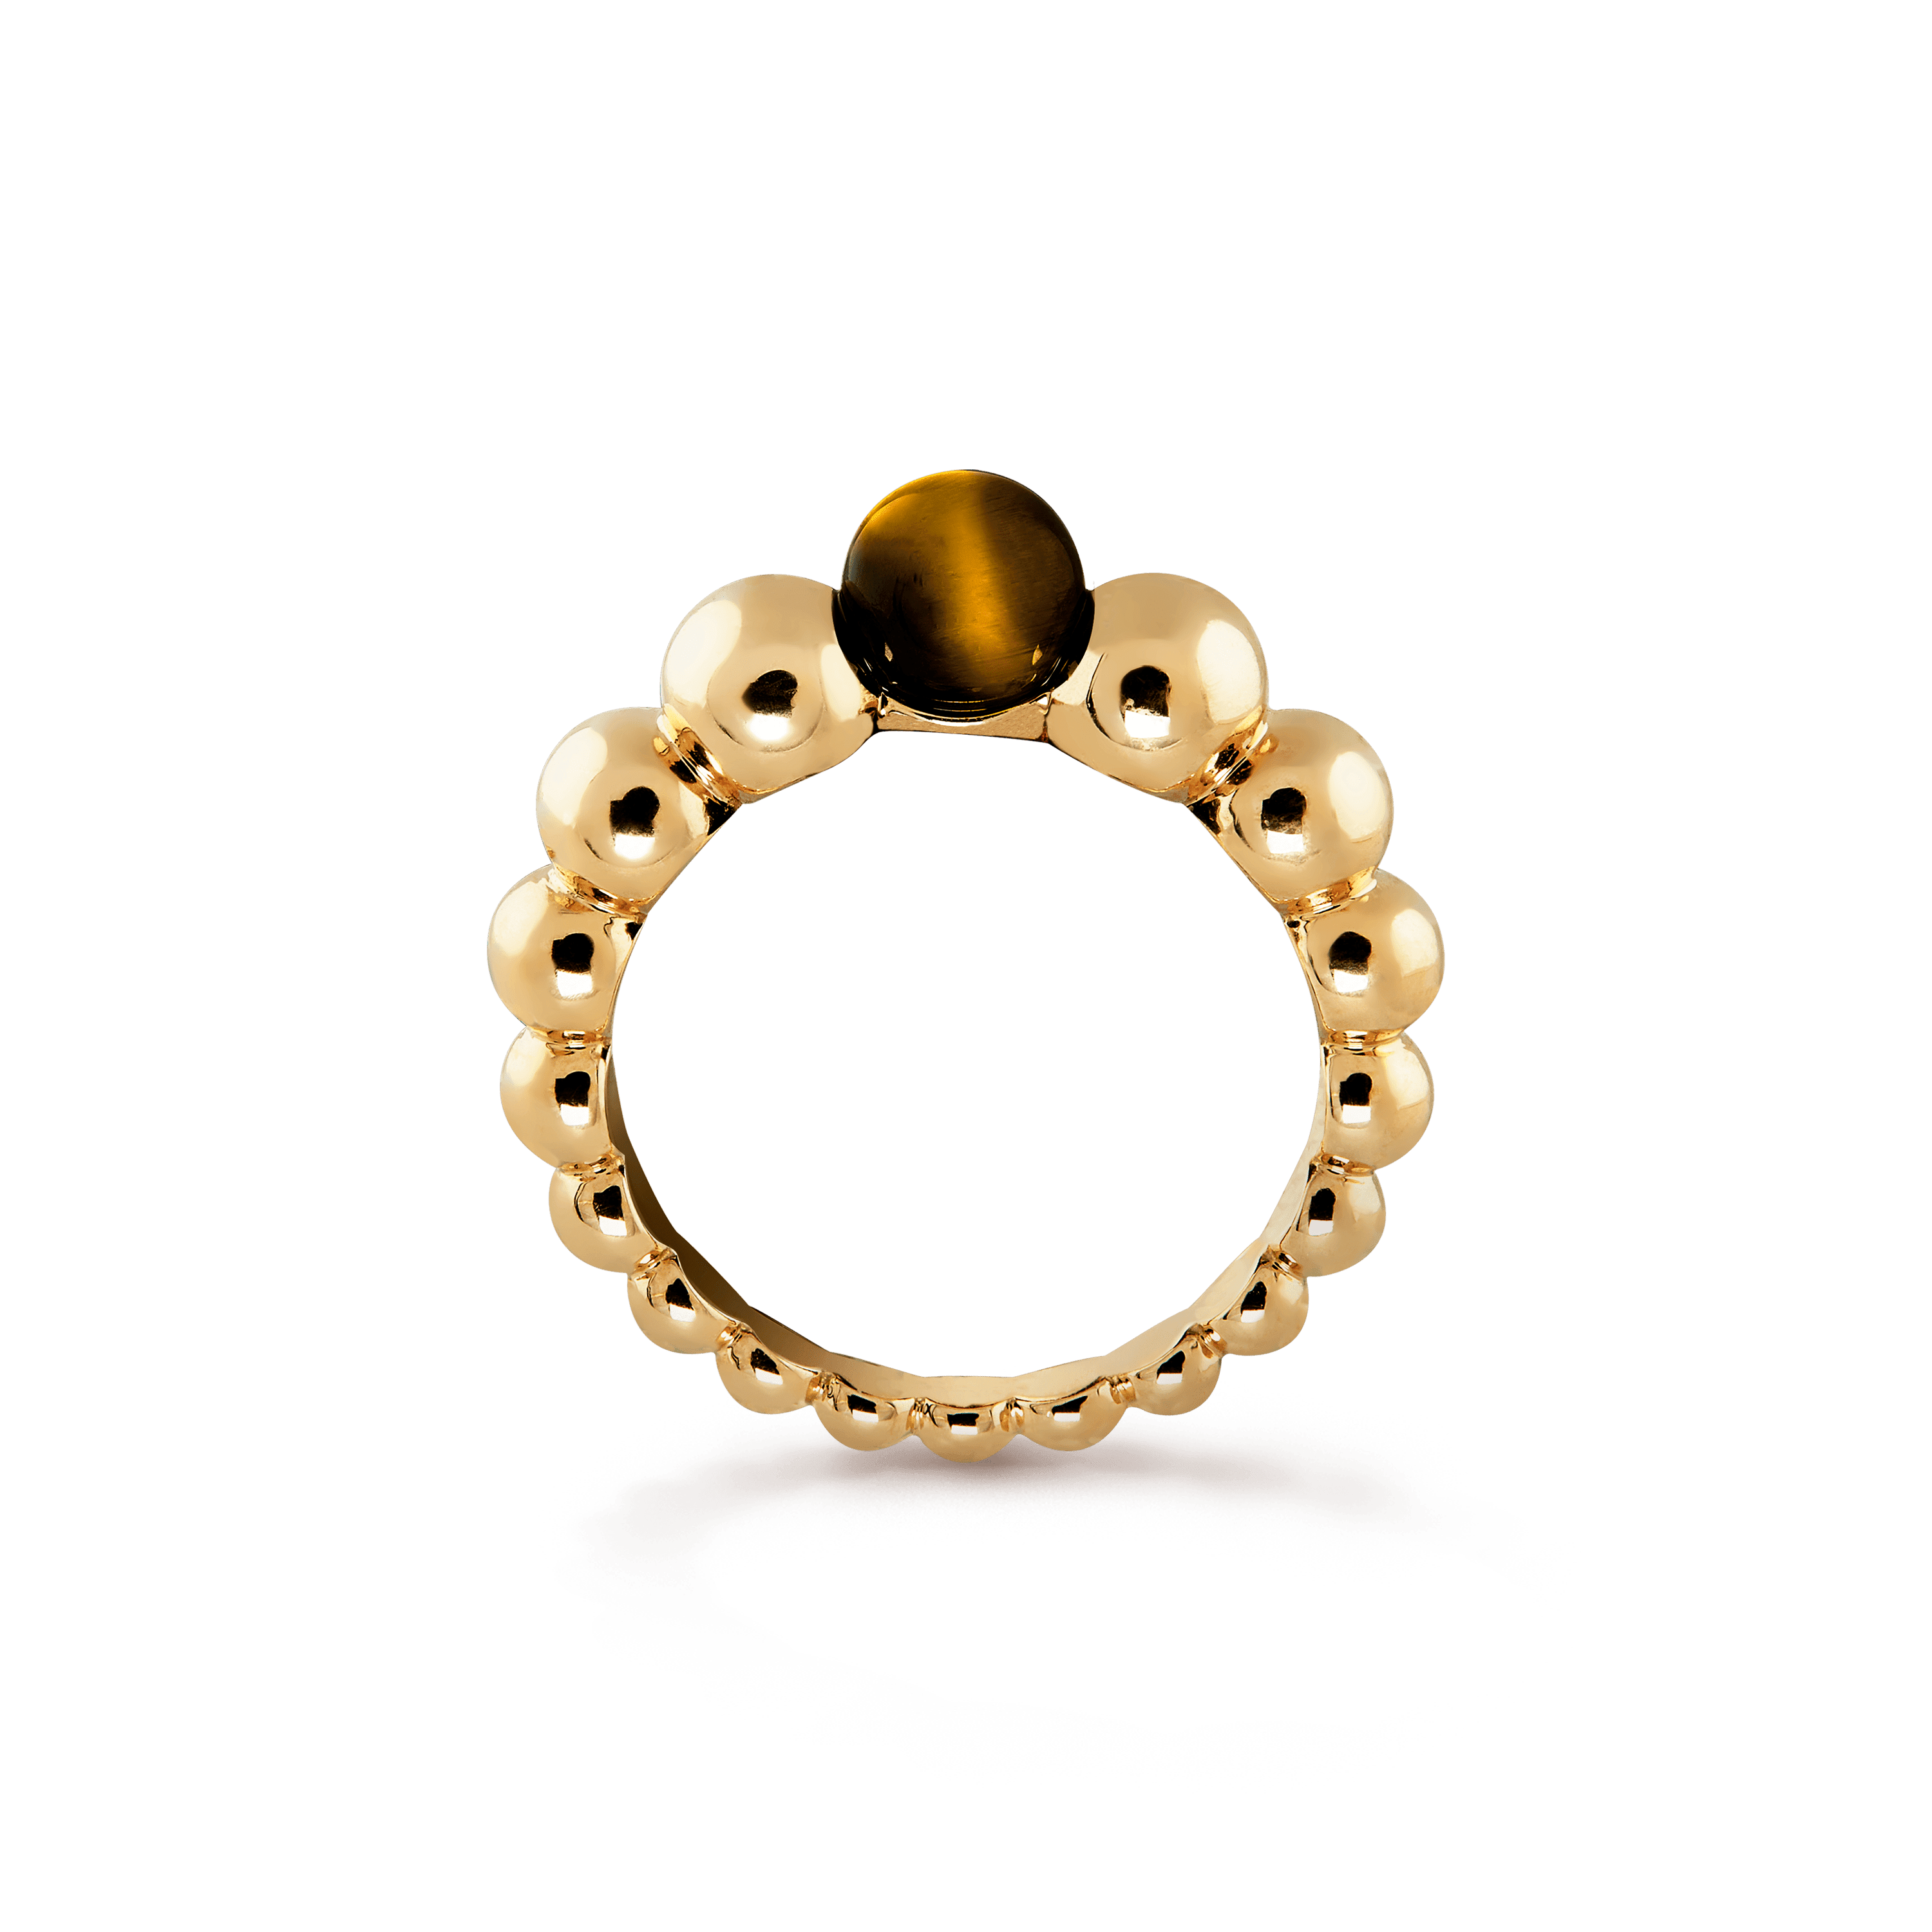 Perlée couleurs variation ring, - Profile View - VCARO5M300 - Van Cleef & Arpels